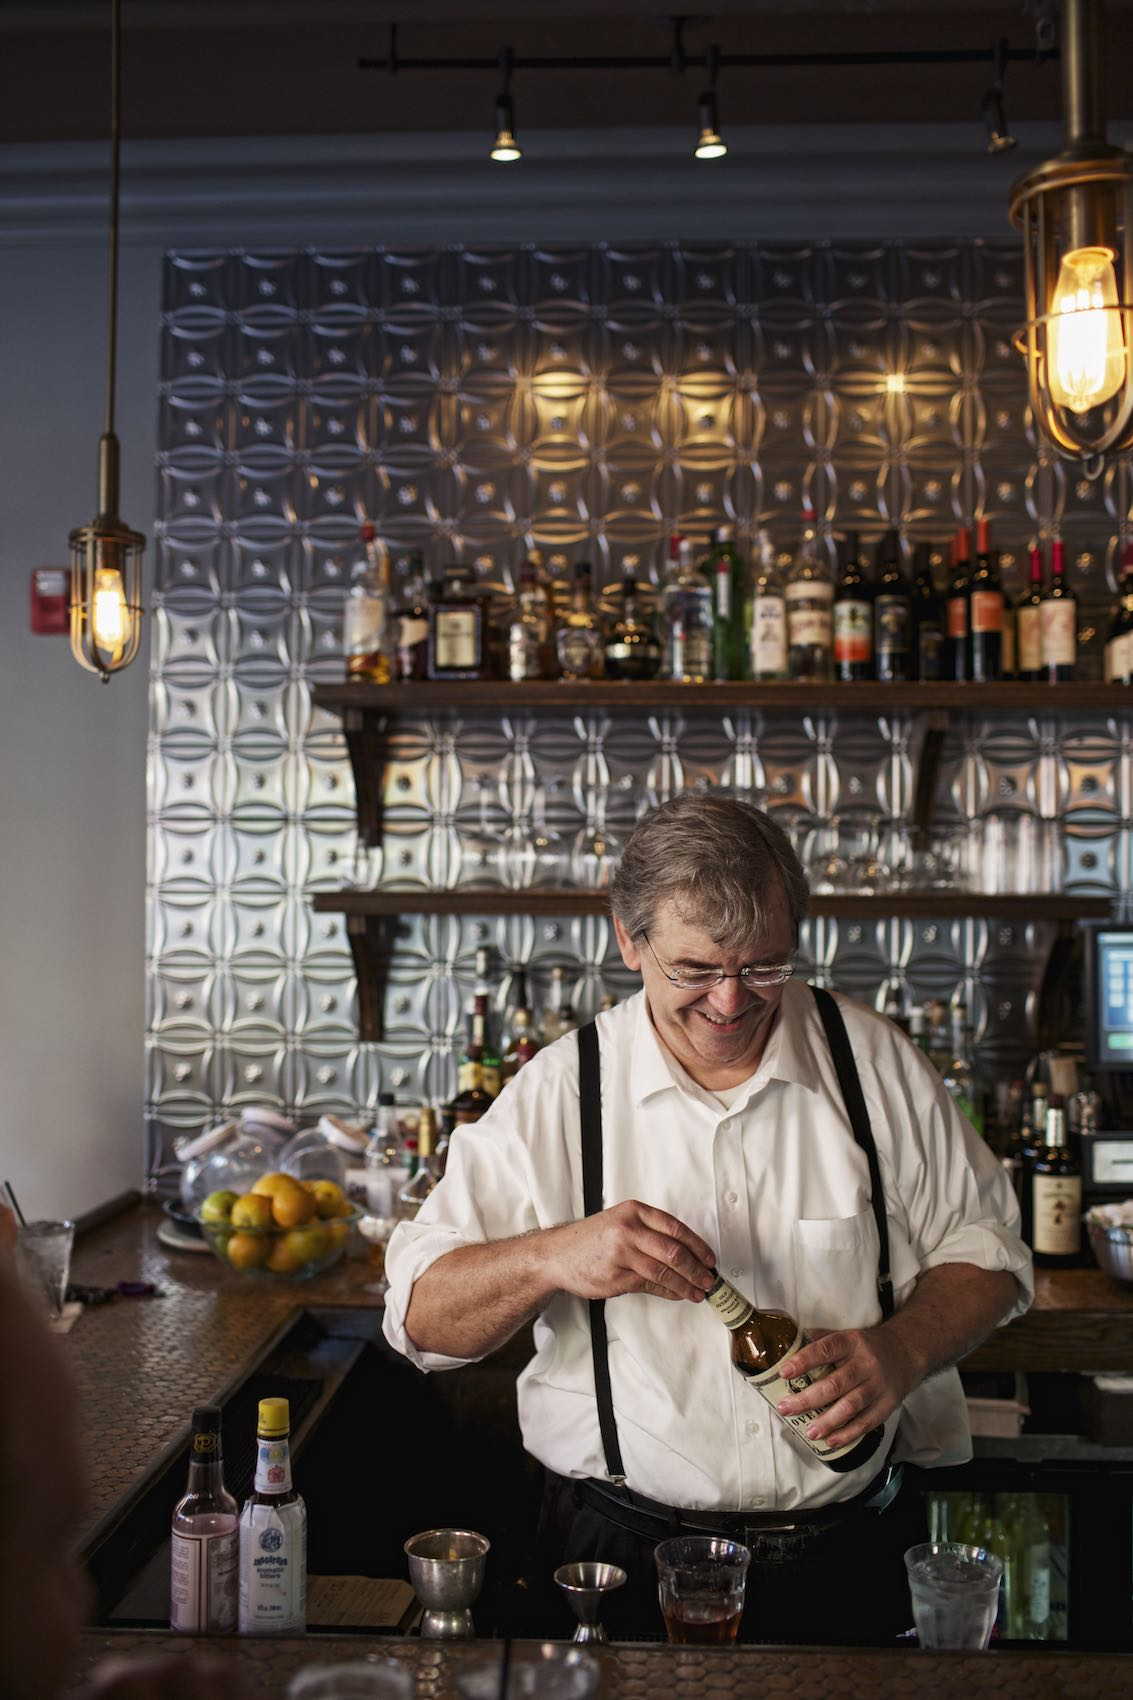 Jody Horton Photography - Bartender behind bar at Kingfish, New Orleans.